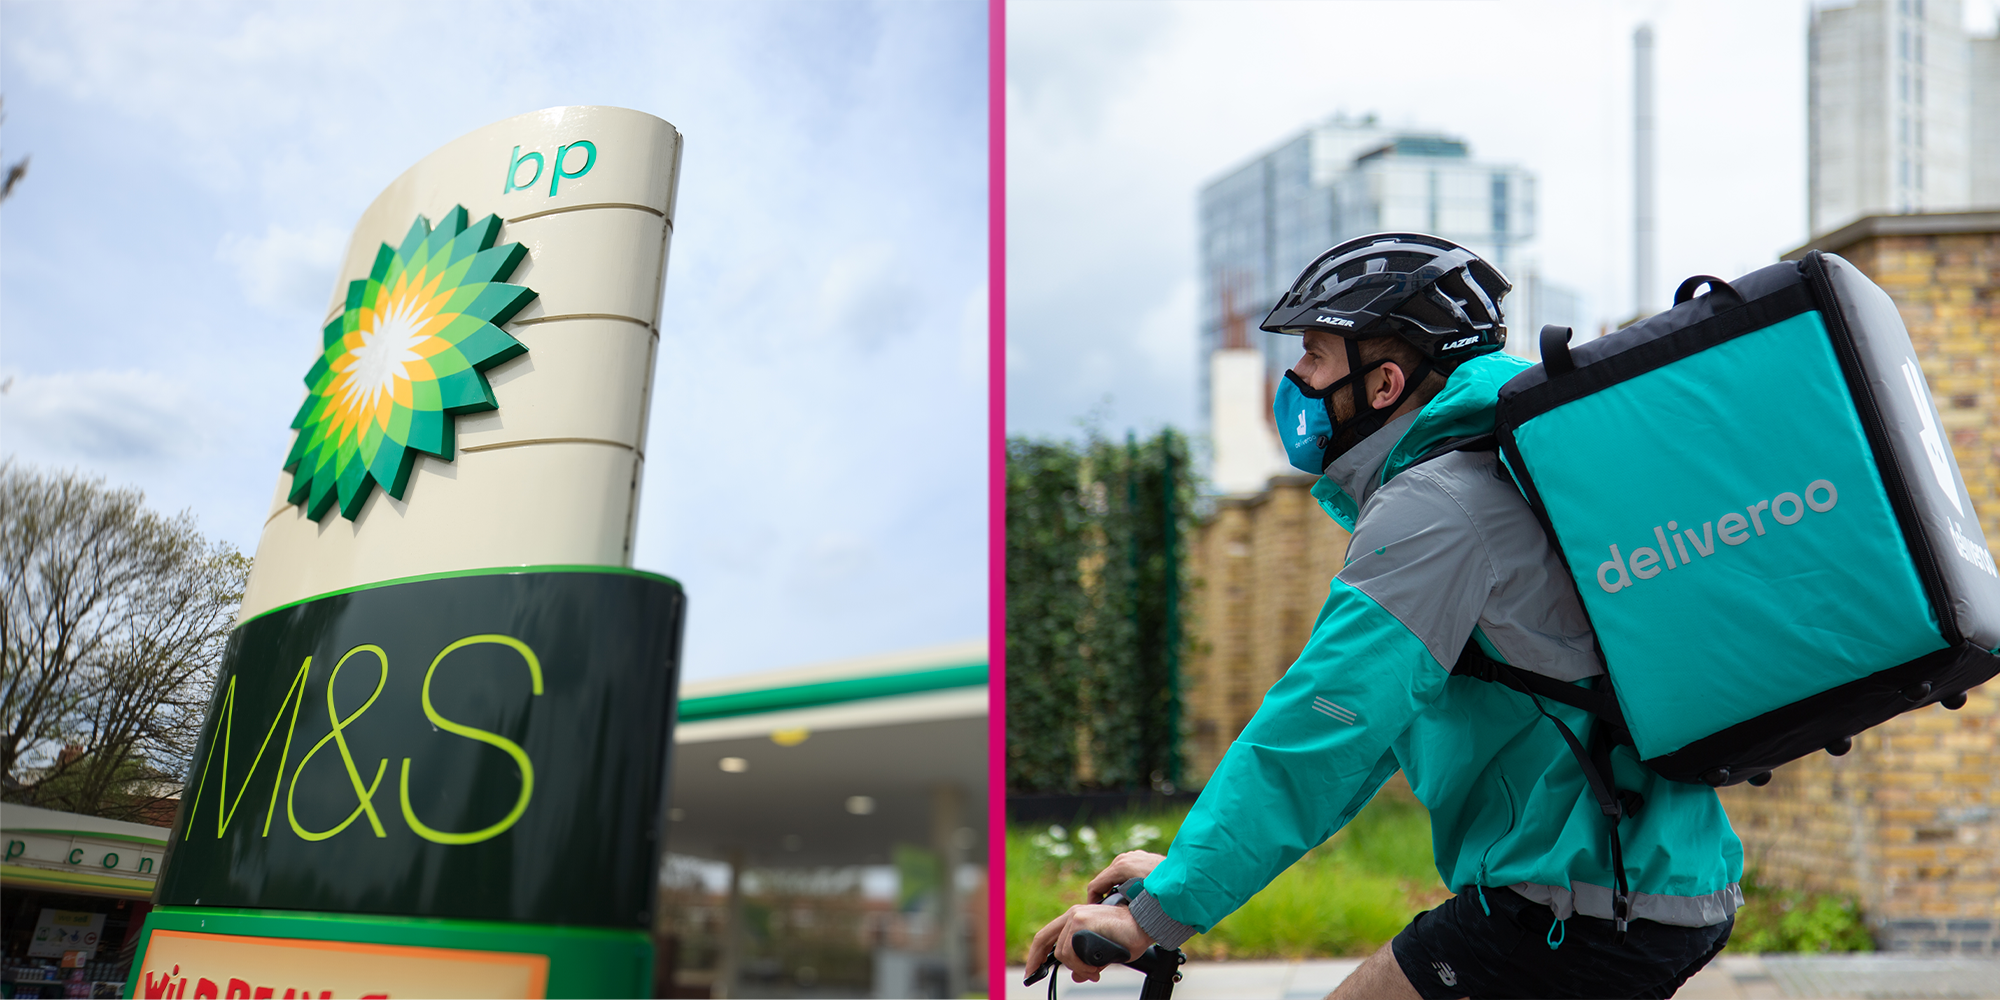 Coronavirus: M&S teams up with Deliveroo to offer food deliveries from its BP garages